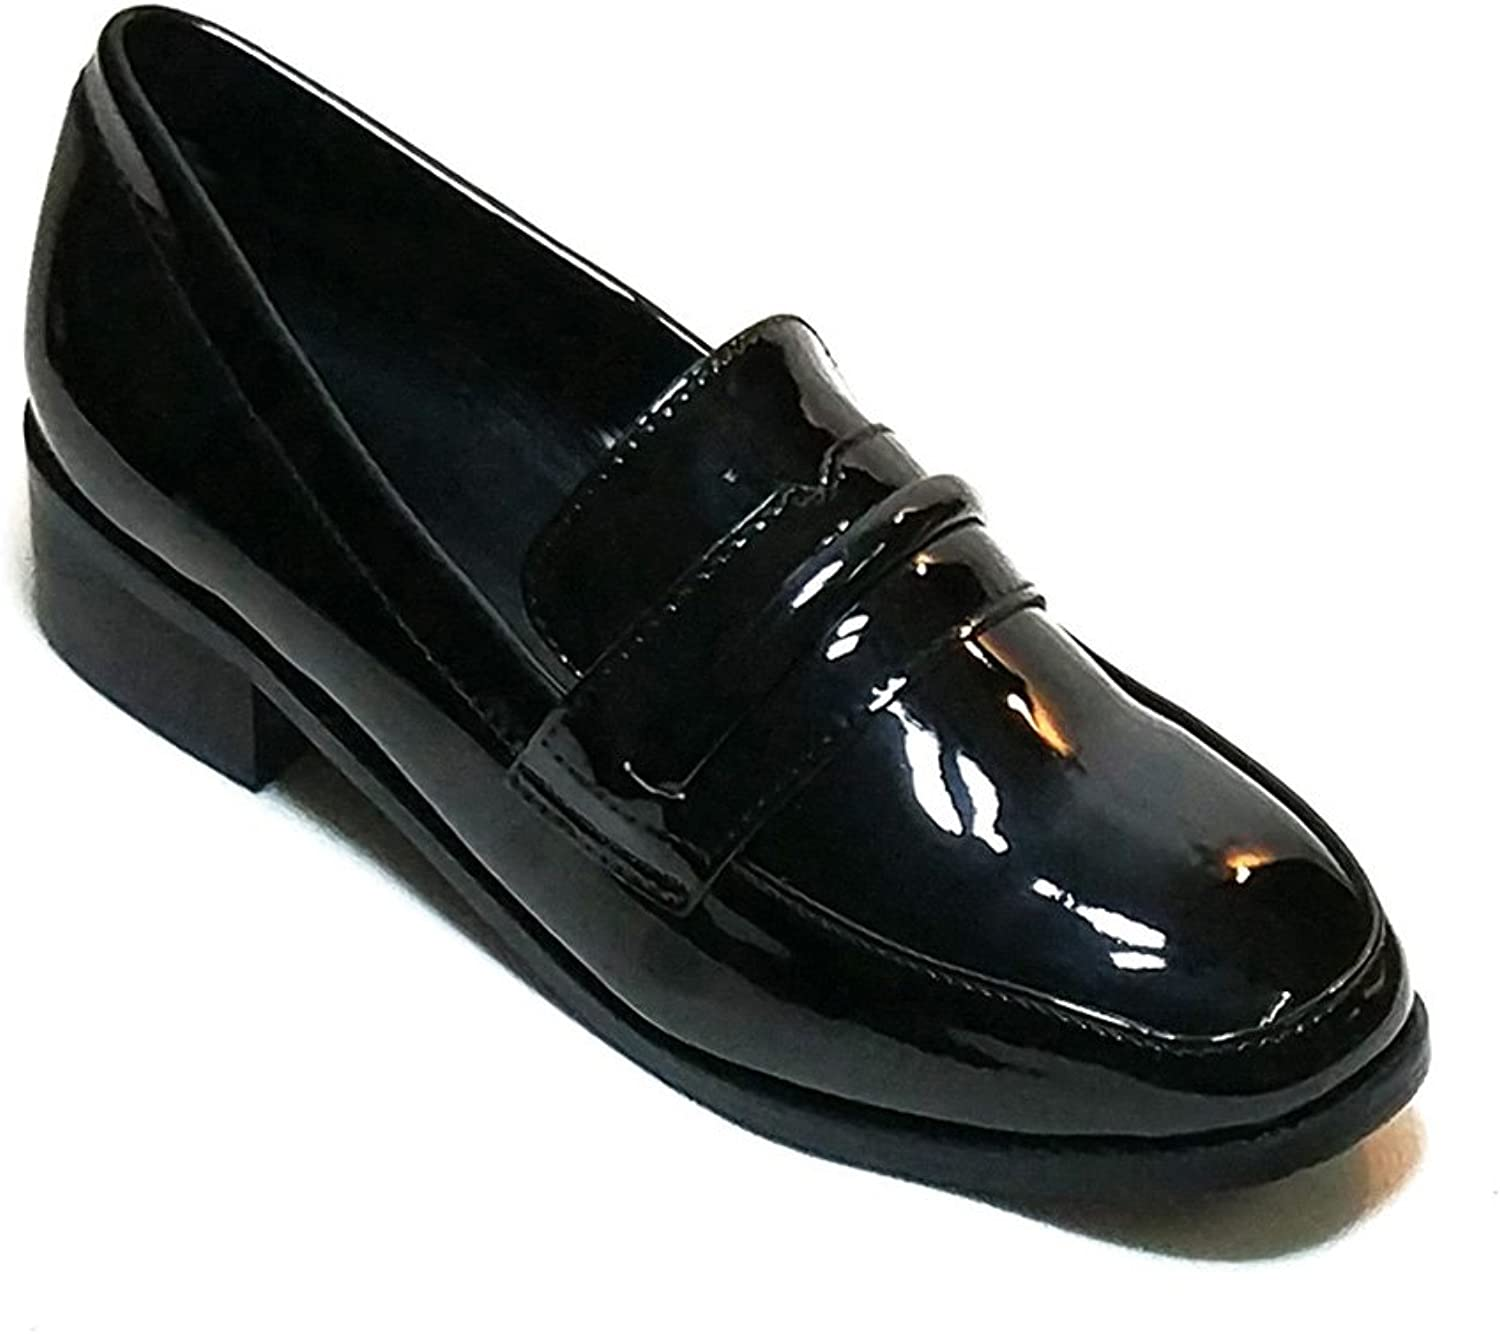 EAGSITY Women Penny Loafers Slip On Block Heel Patent Leather Dress shoes